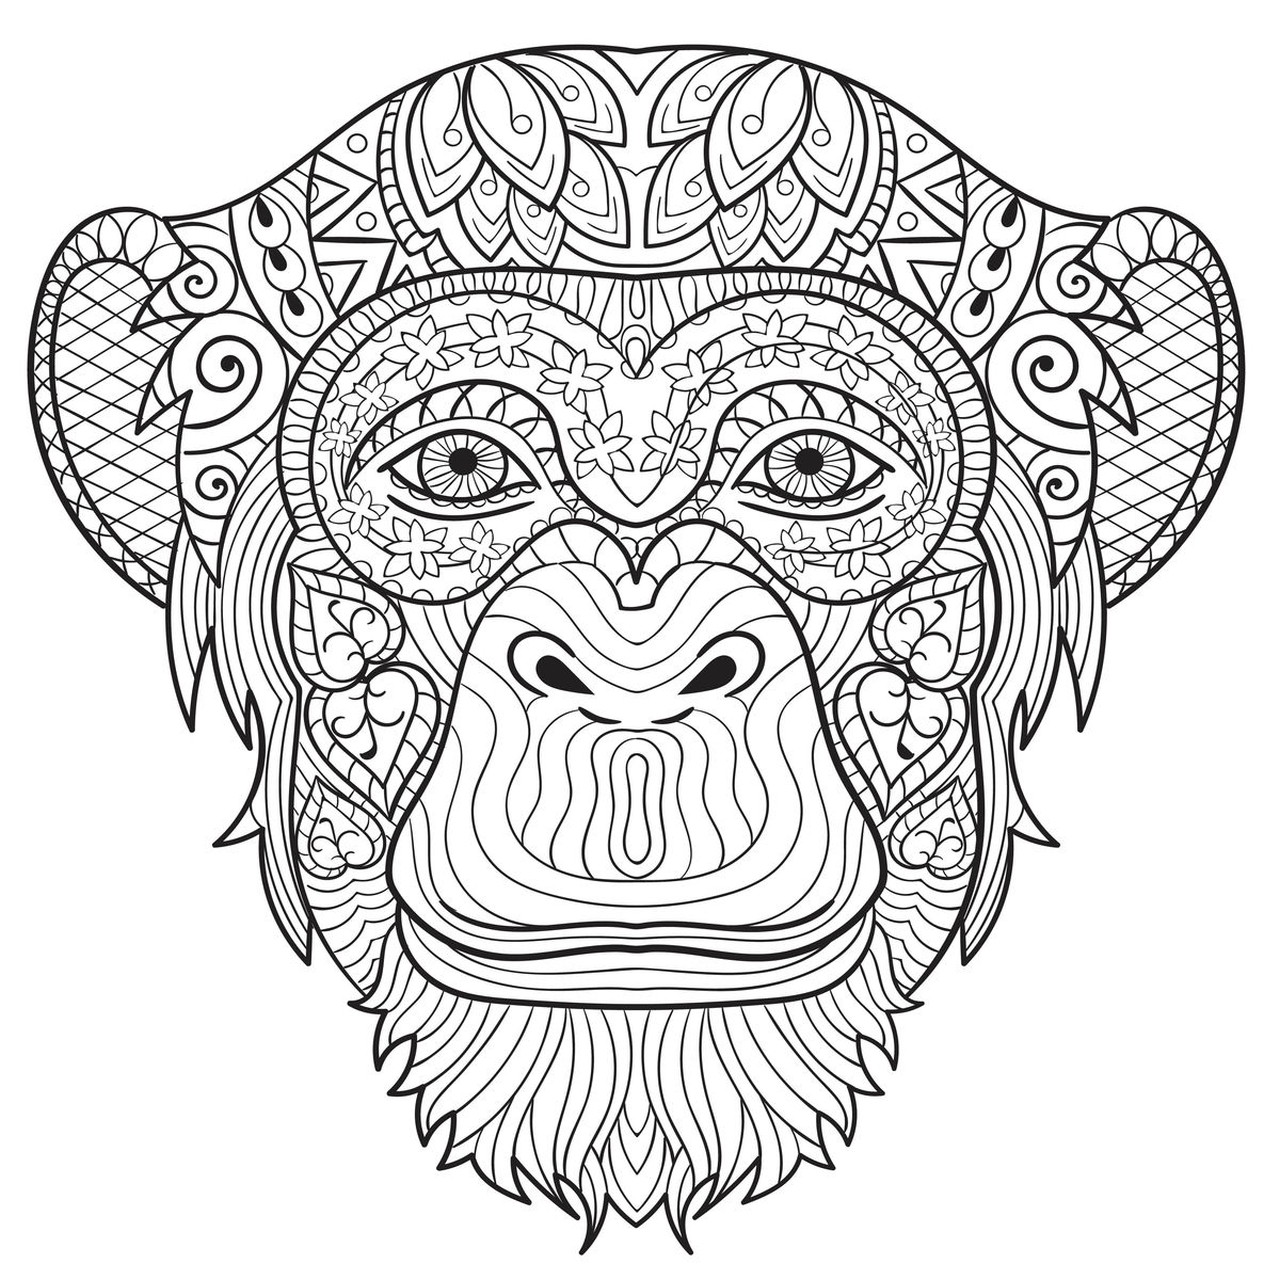 monkey coloring pages for adults 31902 - Monkey Coloring Page